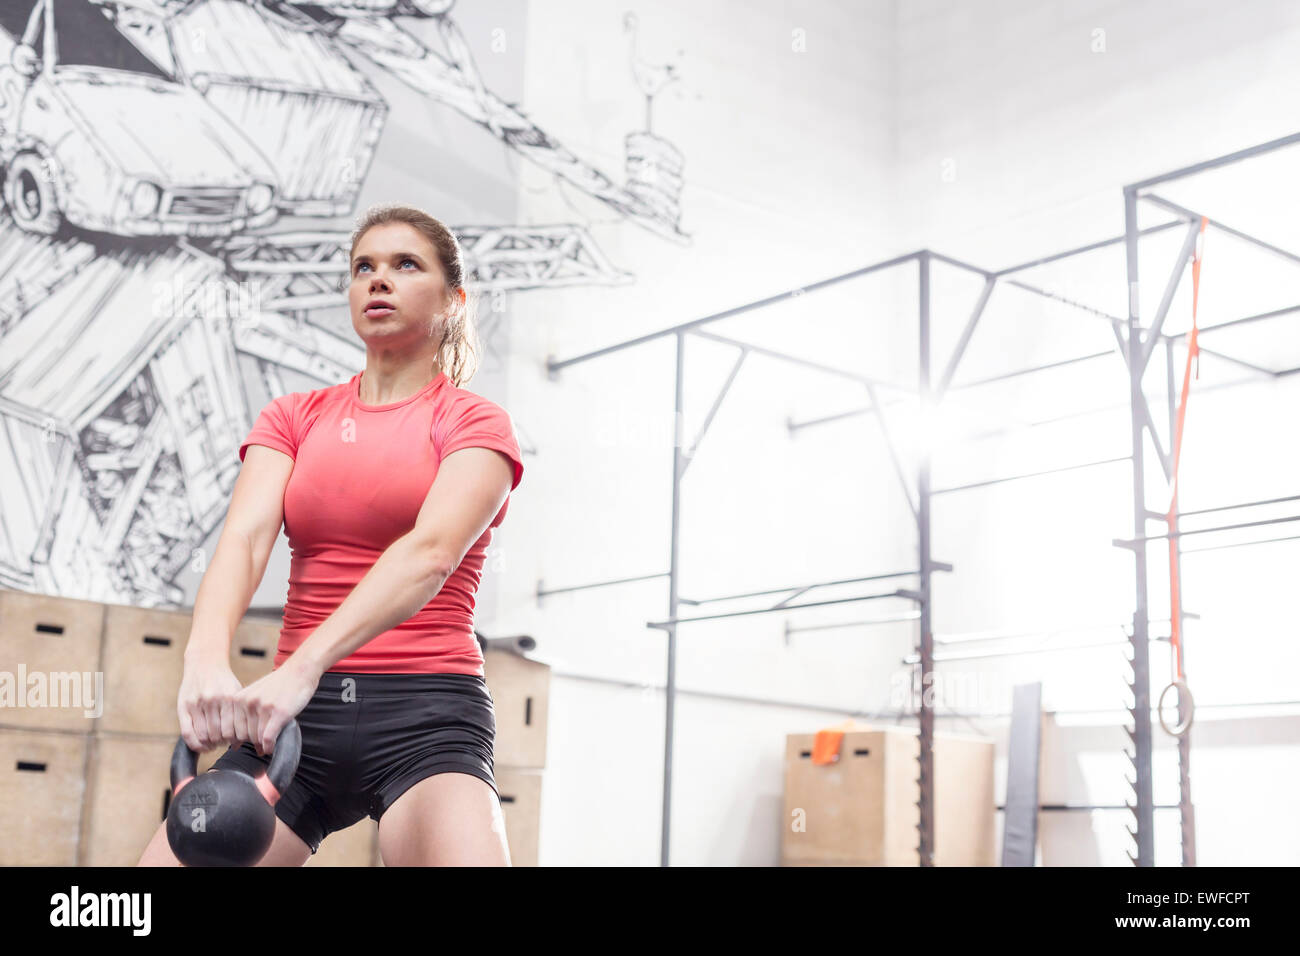 Dedicated woman lifting kettlebell in crossfit gym - Stock Image